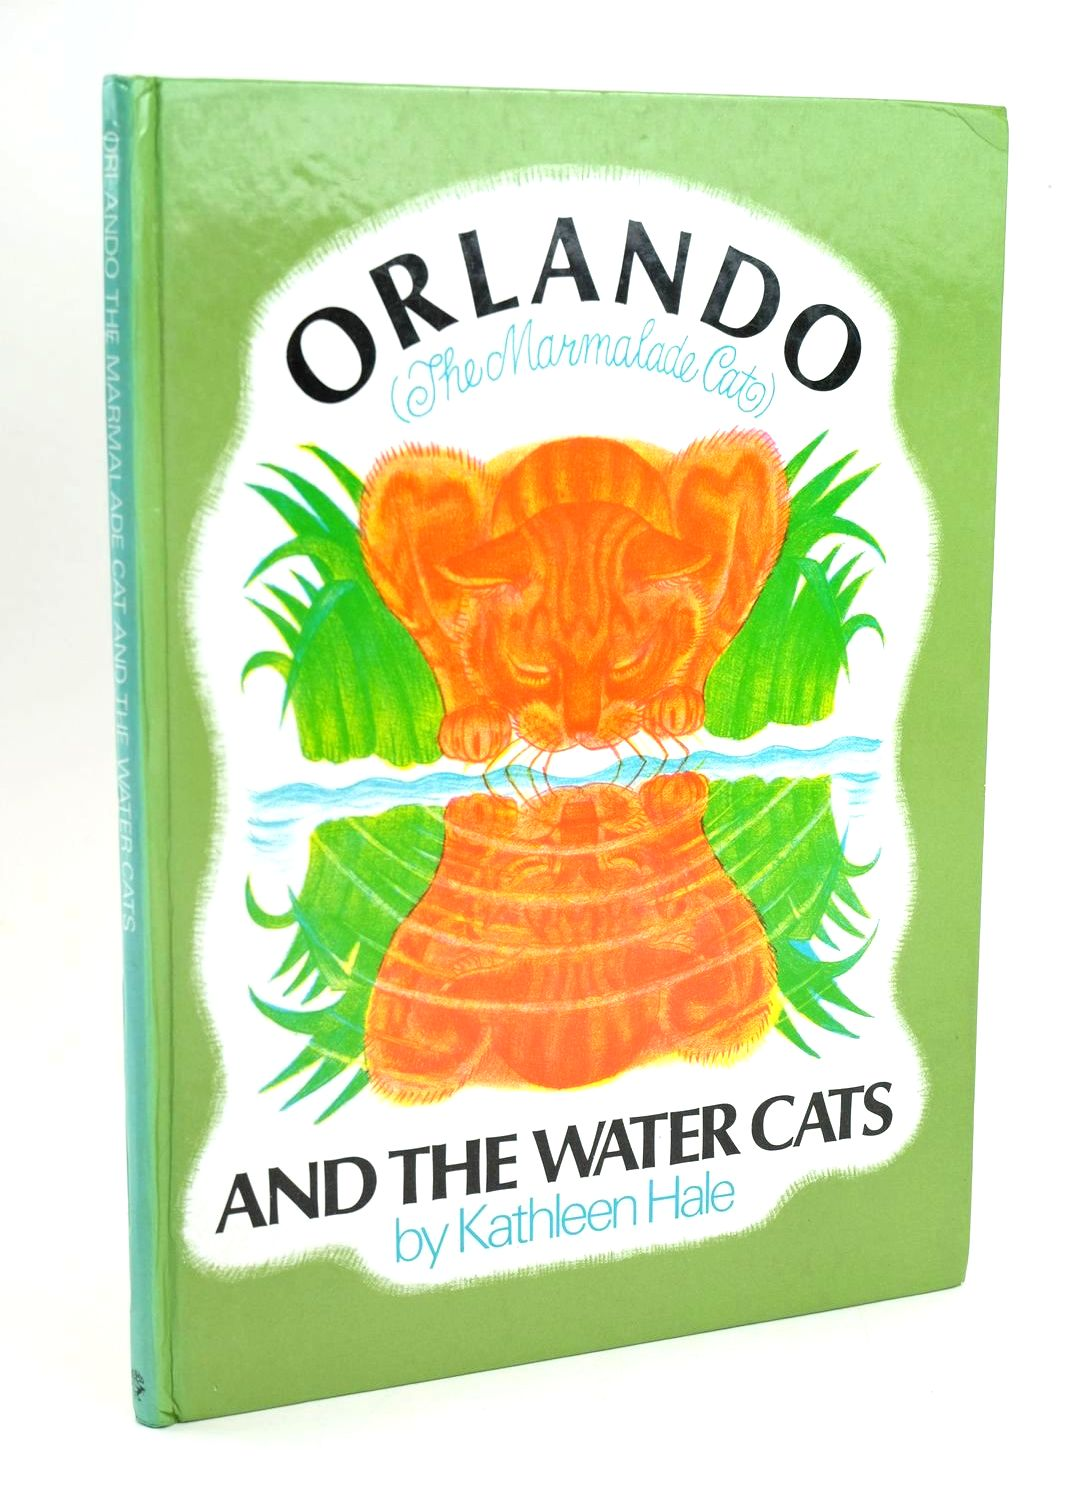 Photo of ORLANDO (THE MARMALADE CAT) AND THE WATER CATS- Stock Number: 1319319